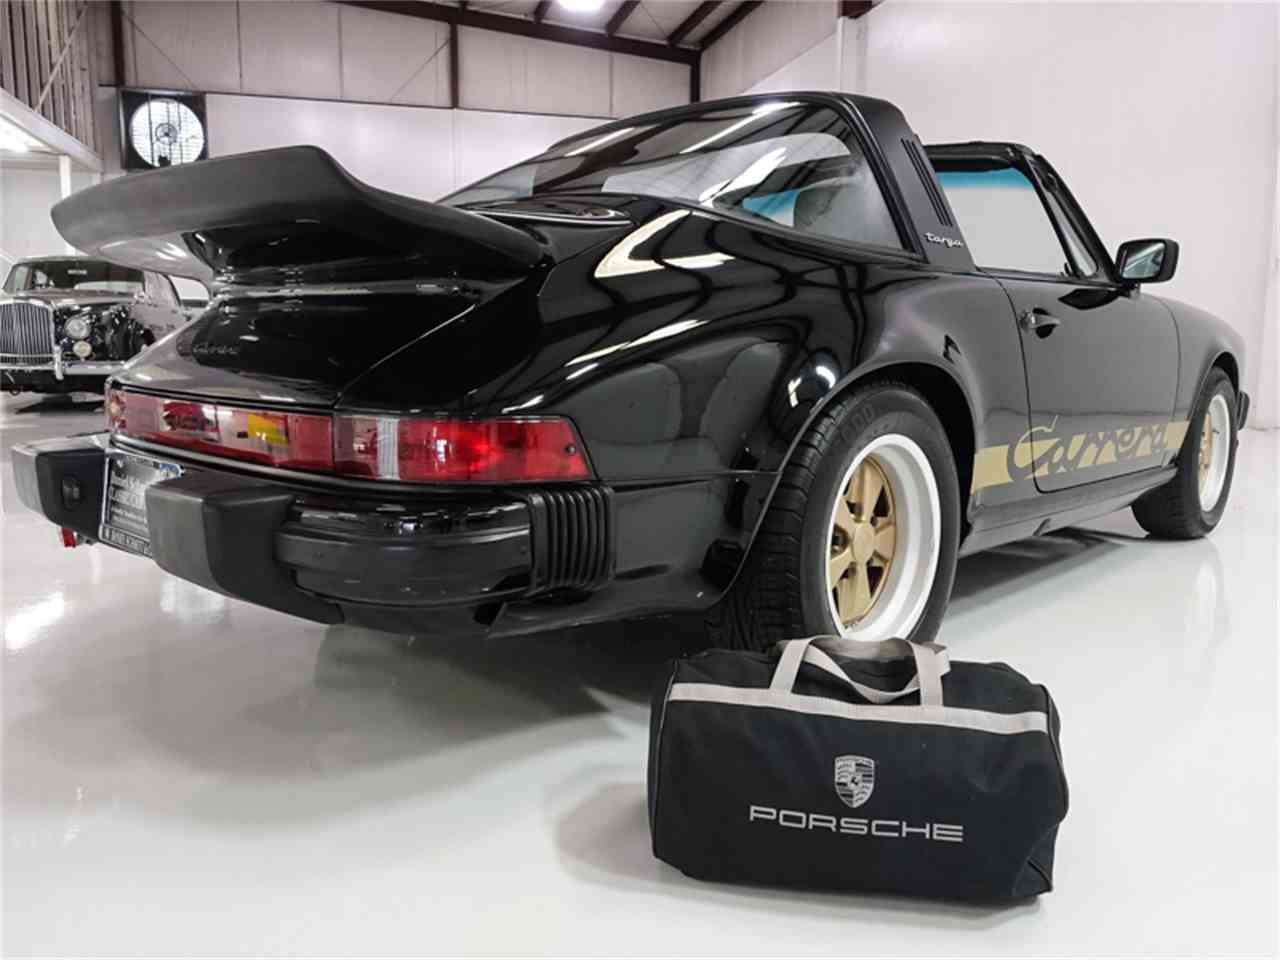 Large Picture of 1975 911 Carrera located in Missouri - $89,900.00 - KKFN